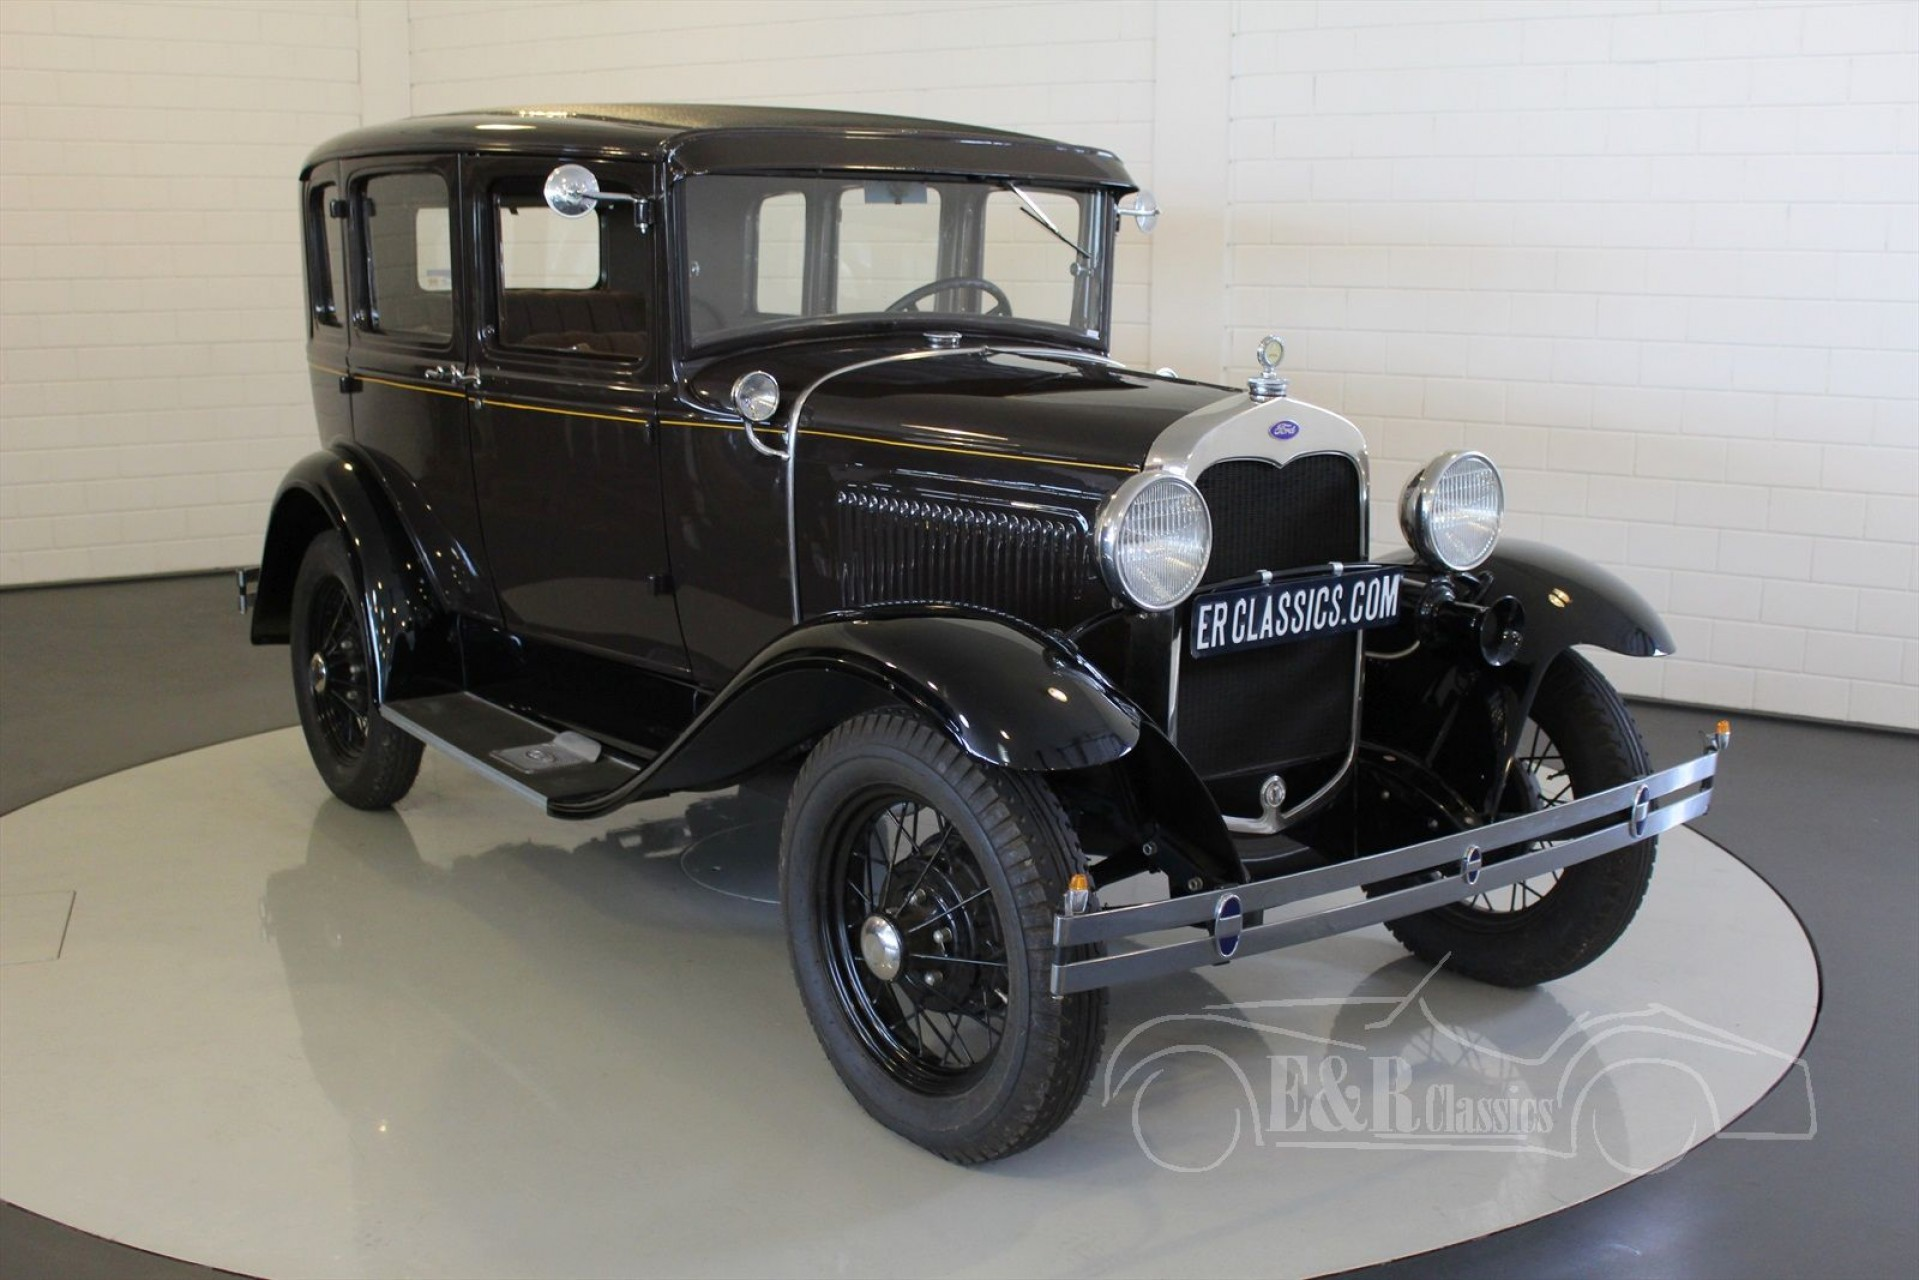 ford model a tudor 1930 vendre erclassics. Black Bedroom Furniture Sets. Home Design Ideas